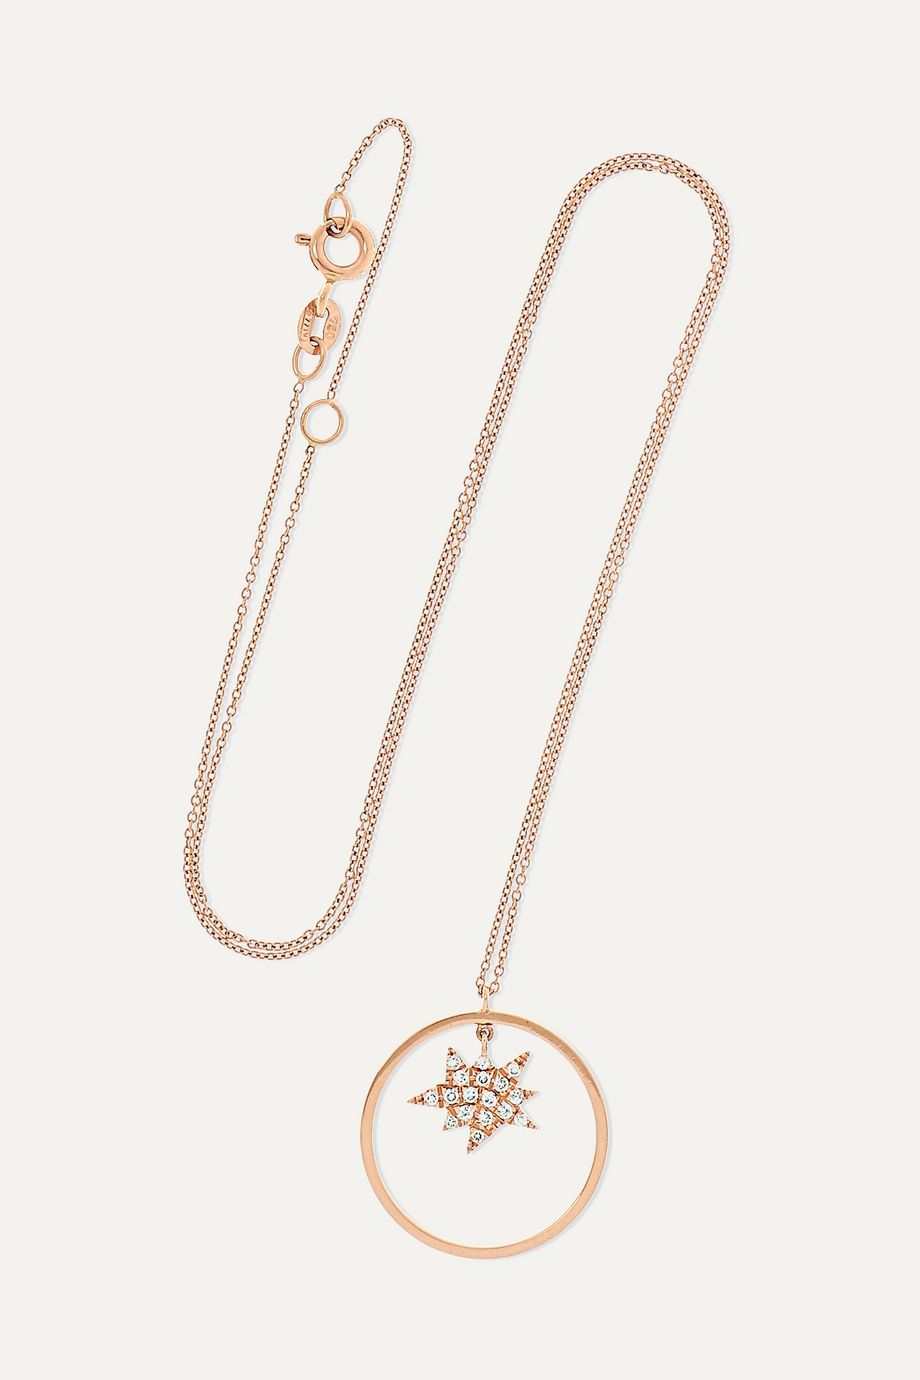 Diane Kordas Explosion Charm 18-karat rose gold diamond necklace